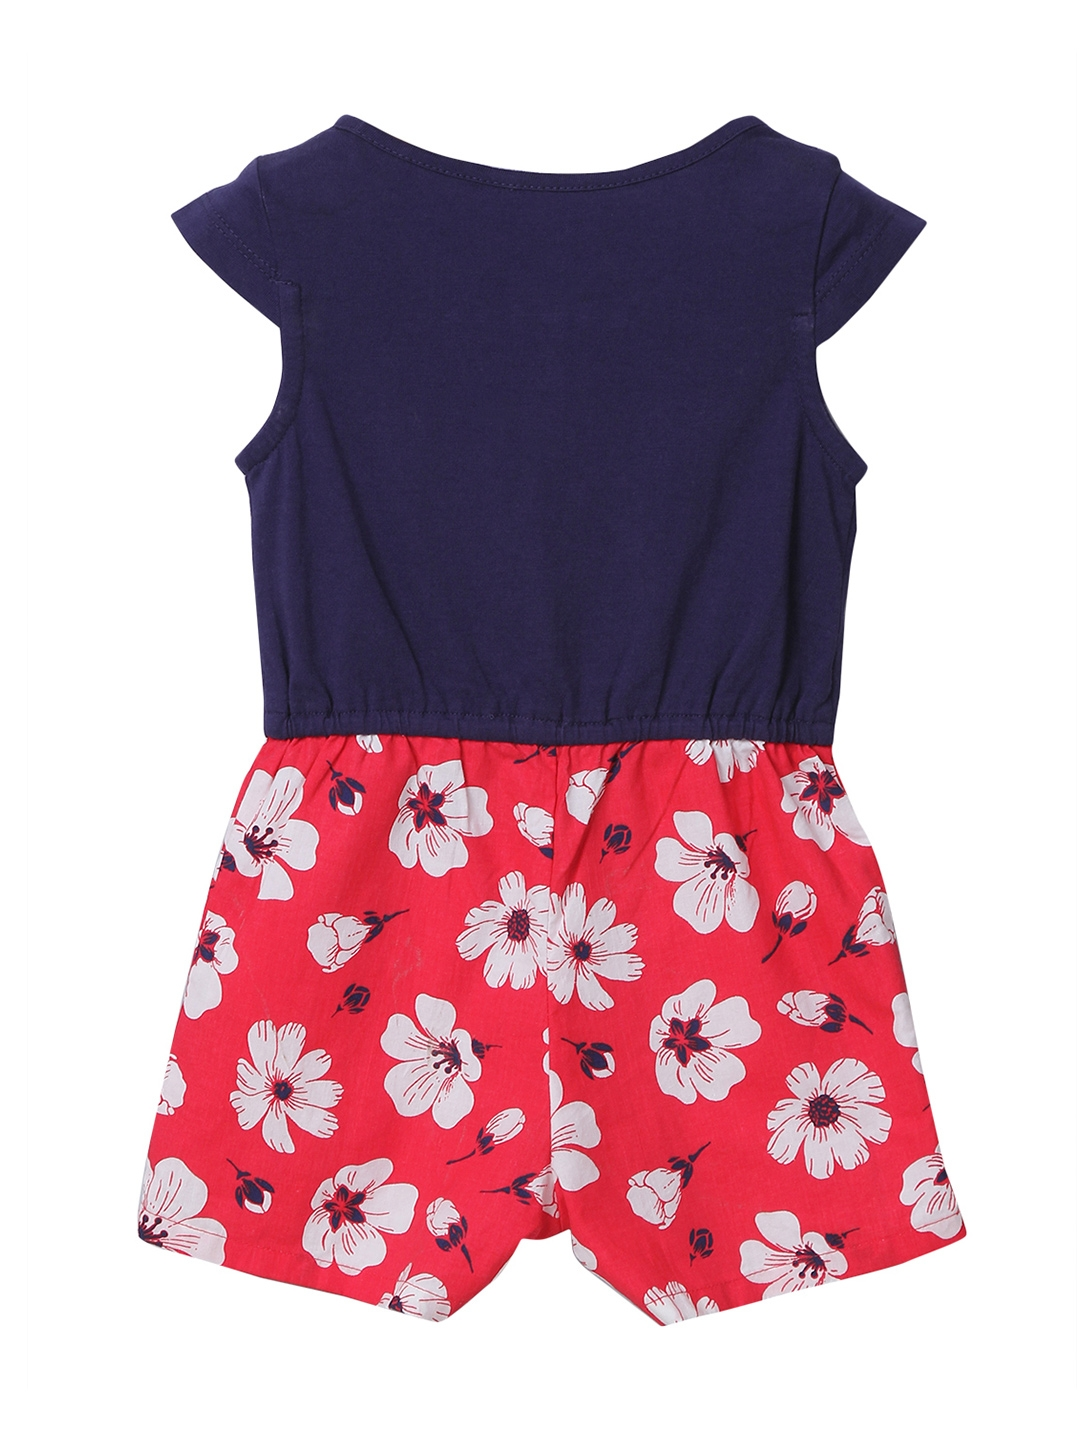 6b6c00a63f9 Buy Beebay Girls Navy   Red Floral Print Playsuit - Jumpsuit for ...